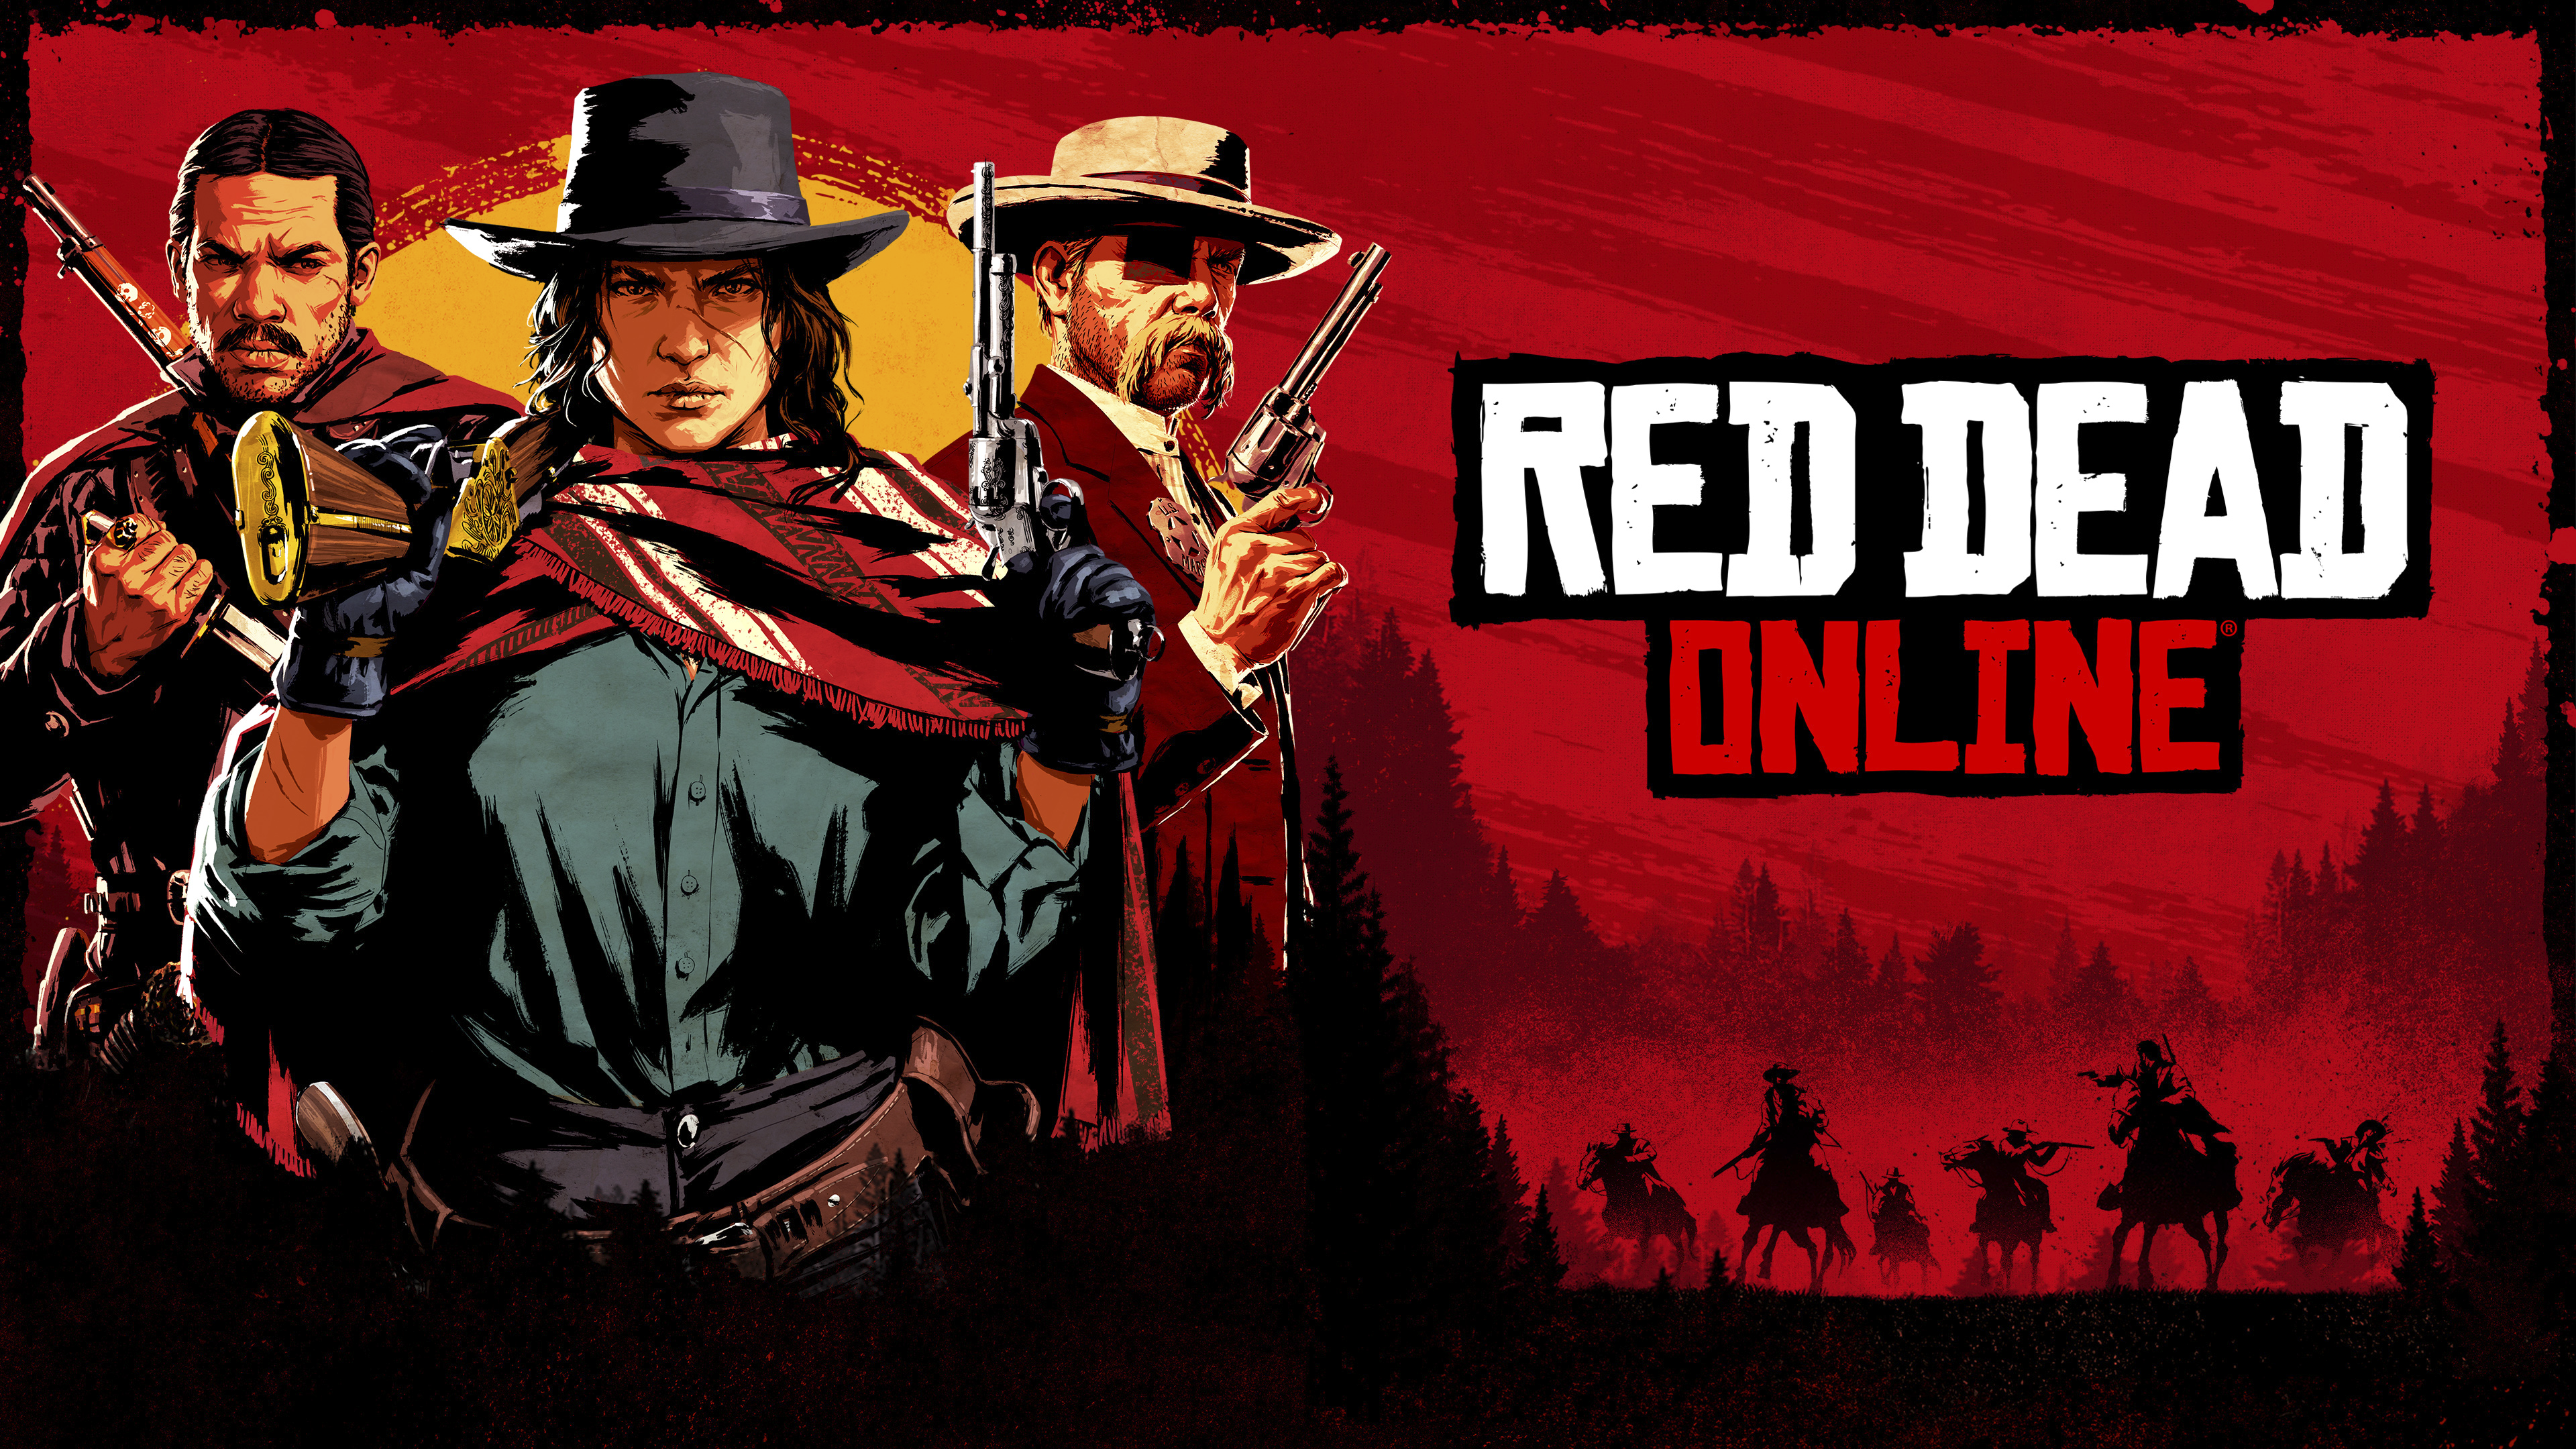 Red Dead Online standalone trailer